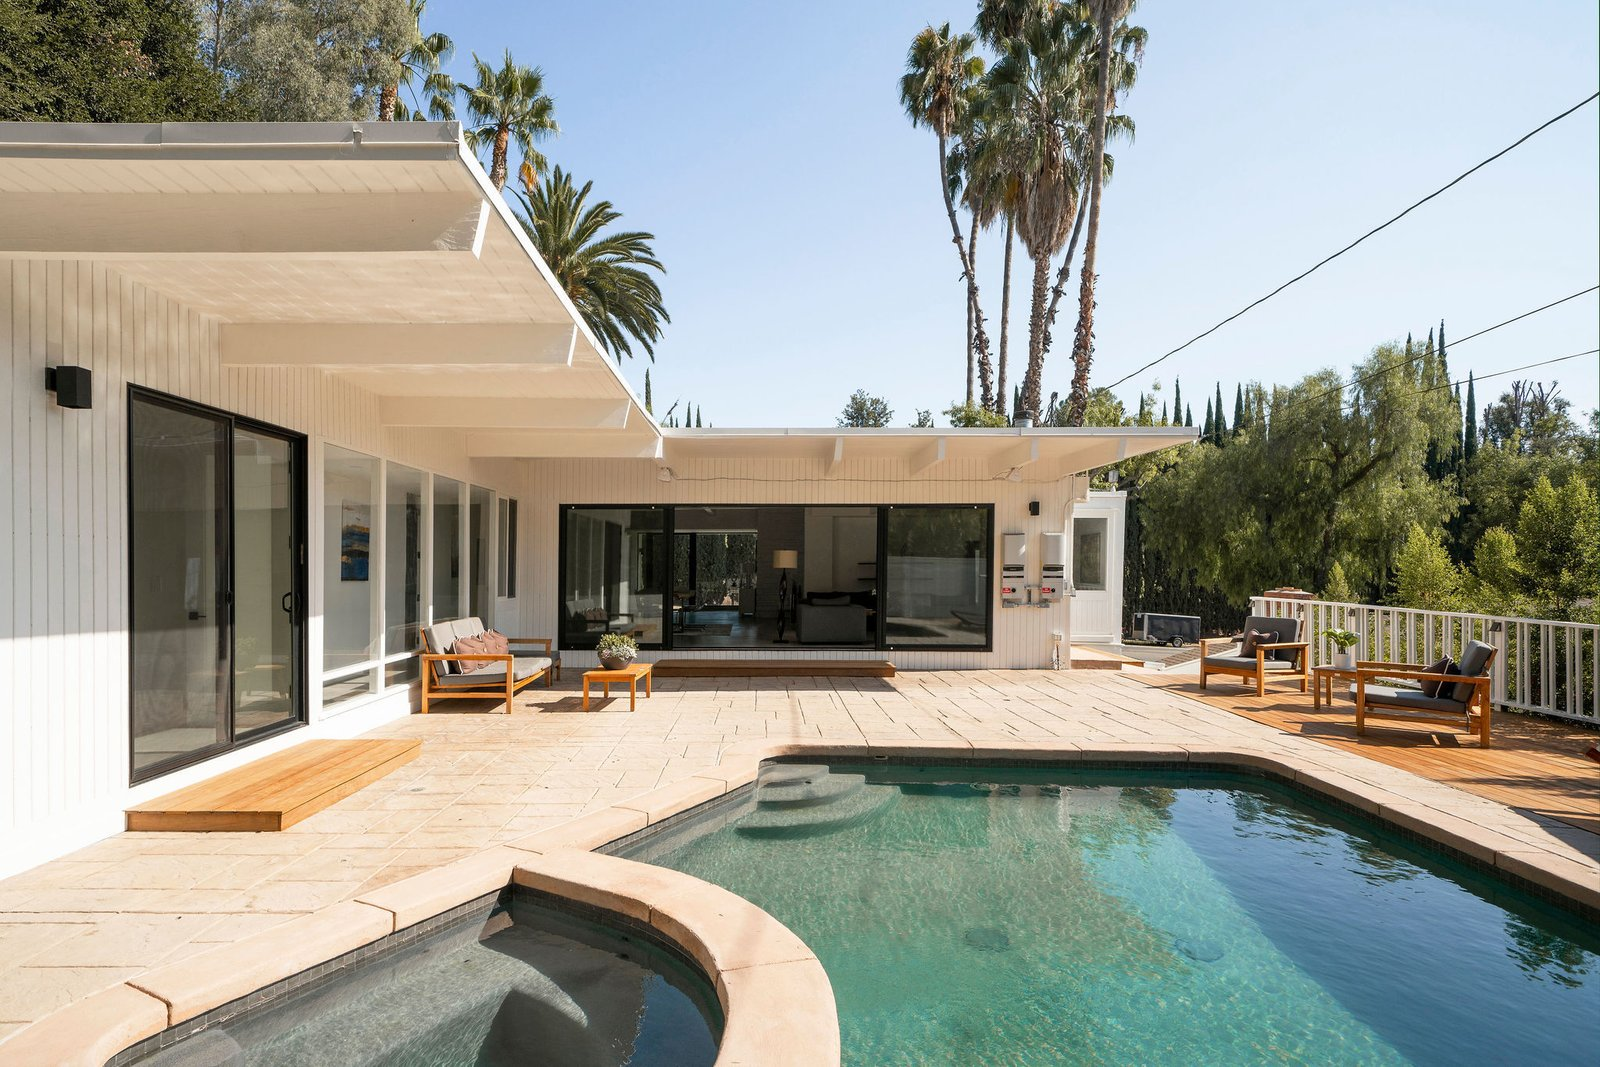 A resurfaced pool and new deck fill the backyard.  Photo 24 of 25 in Before & After: Two Brothers List Their Swanky Midcentury Bachelor Pad for $1.6M